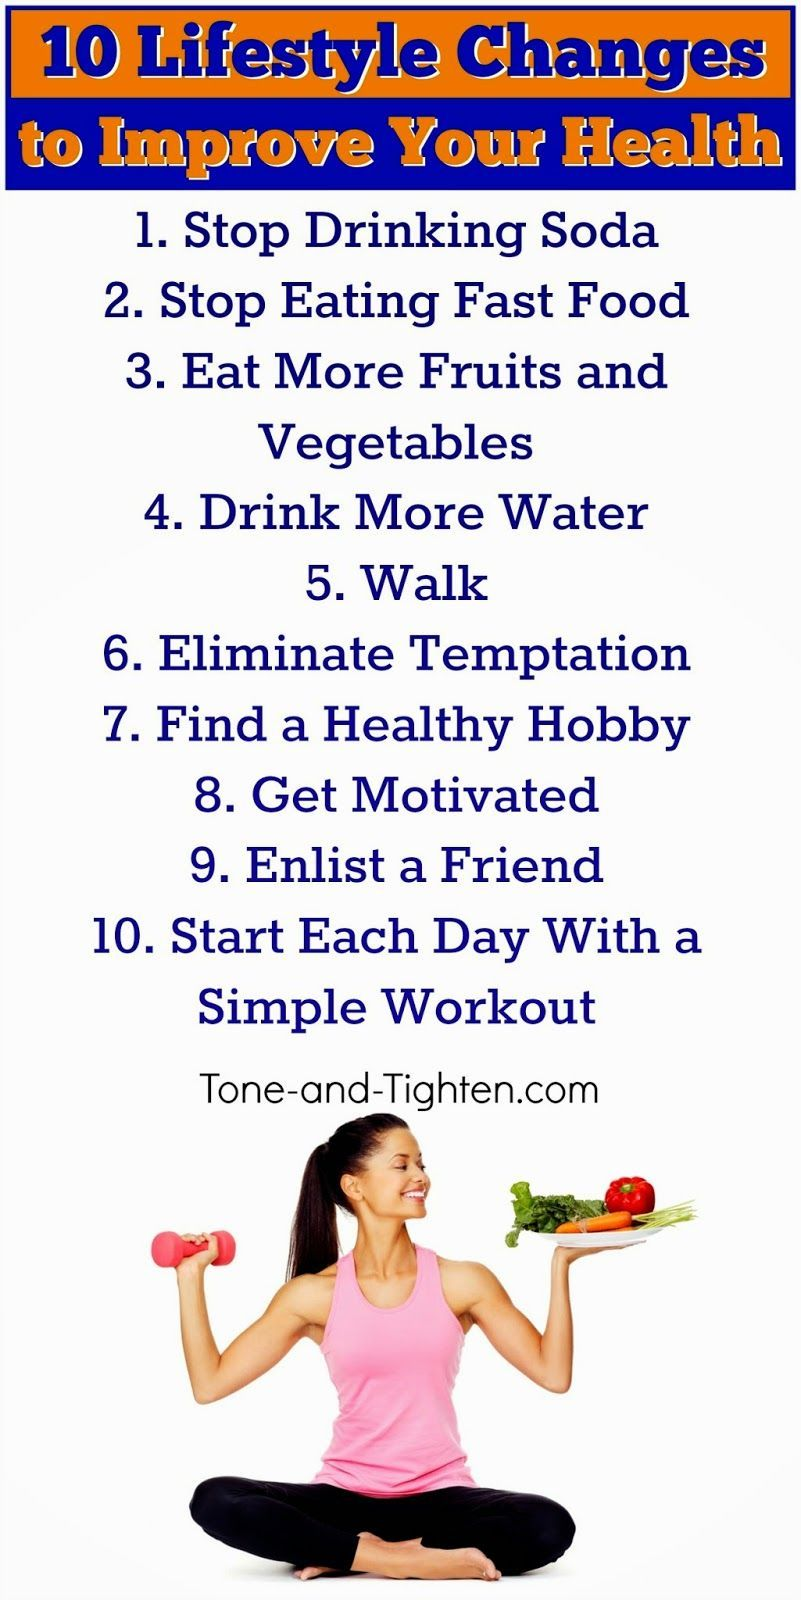 #toneandtightencom #lifestyle #improve #healthy #fitness #changes #advice #weight #health #help #you...